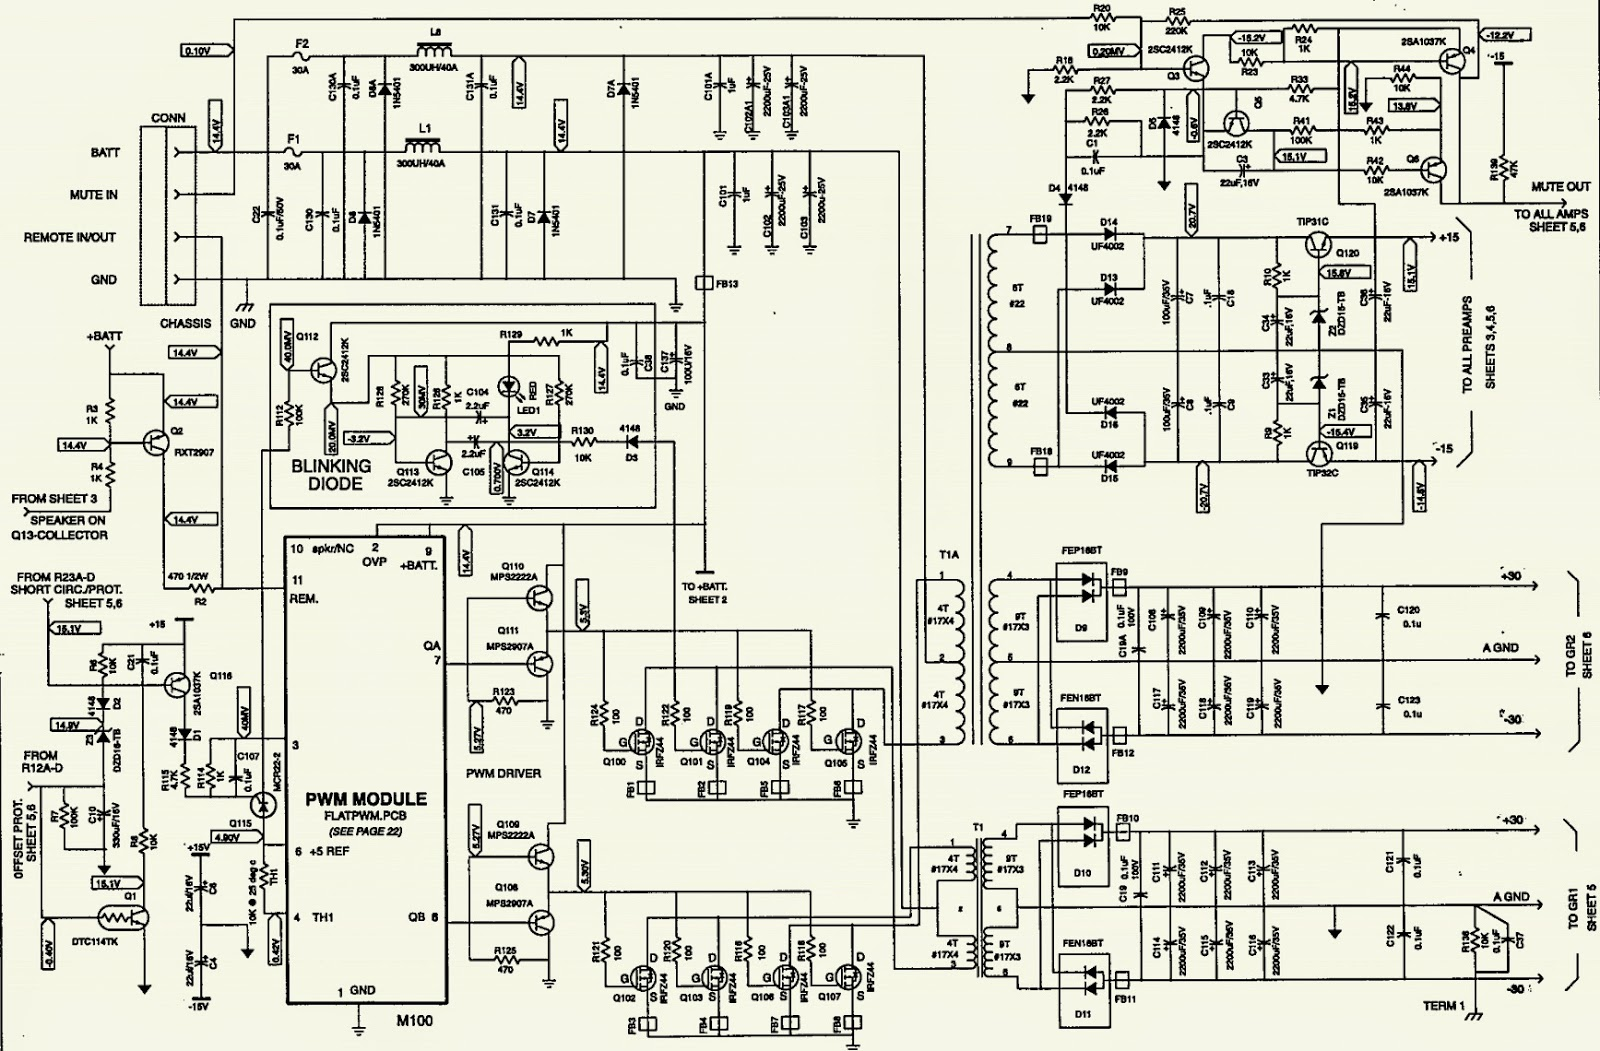 car audio schematics wiring library tube stereo schematics car stereo schematics [ 1600 x 1051 Pixel ]